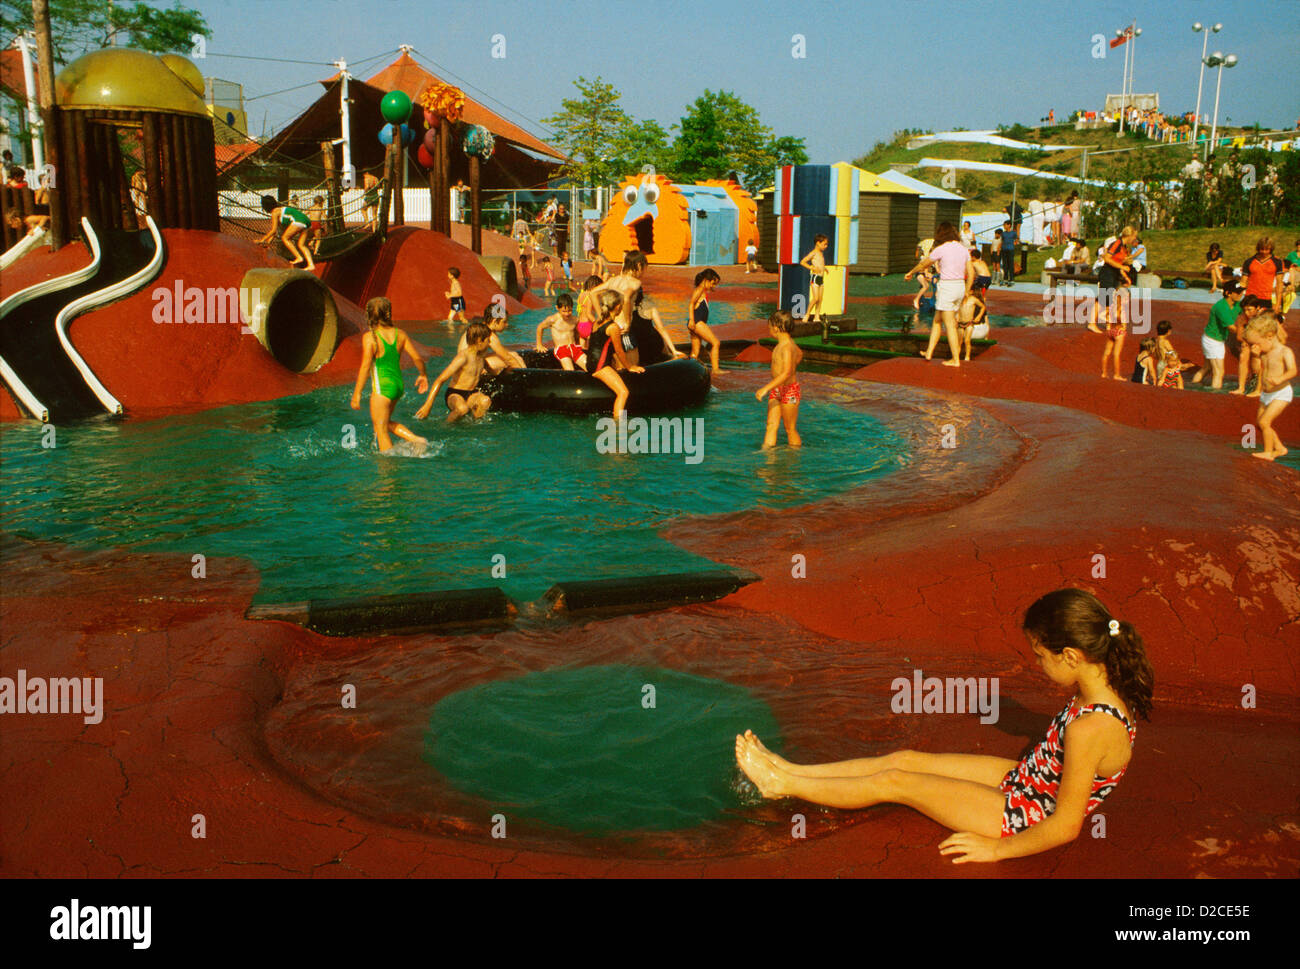 World Waterpark Stock Photos & World Waterpark Stock Images - Alamy